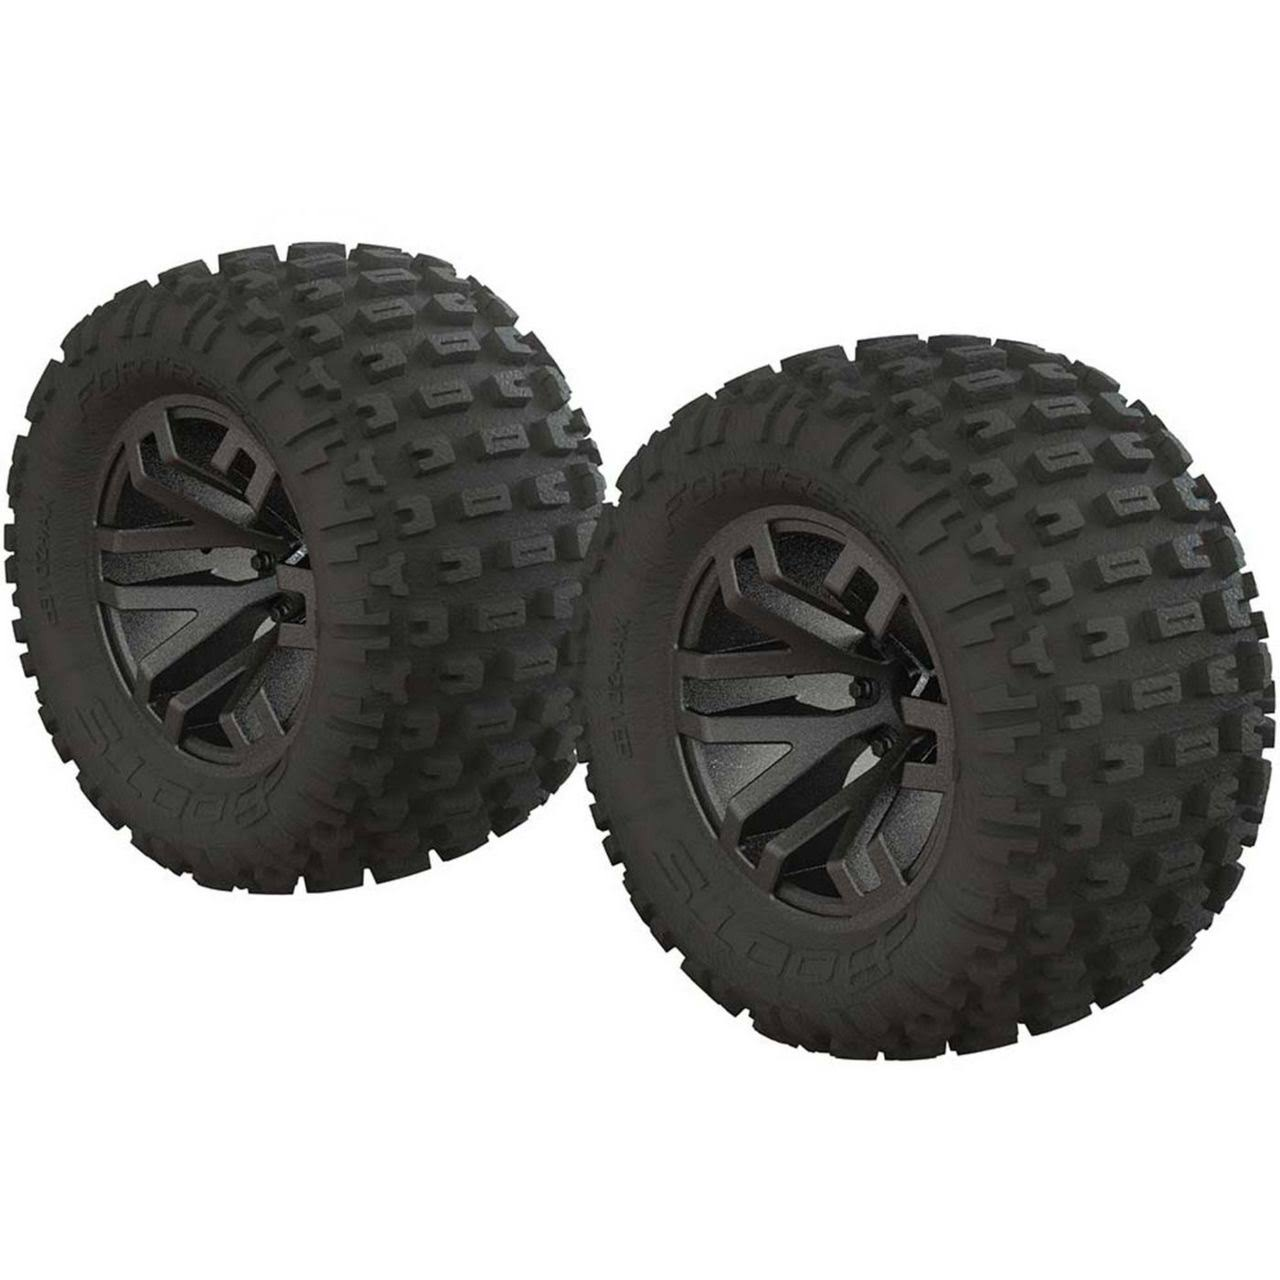 Arrma Ar550045 dBoots Fortress MT Tire Set - Glued, Black Chrome, 2pk